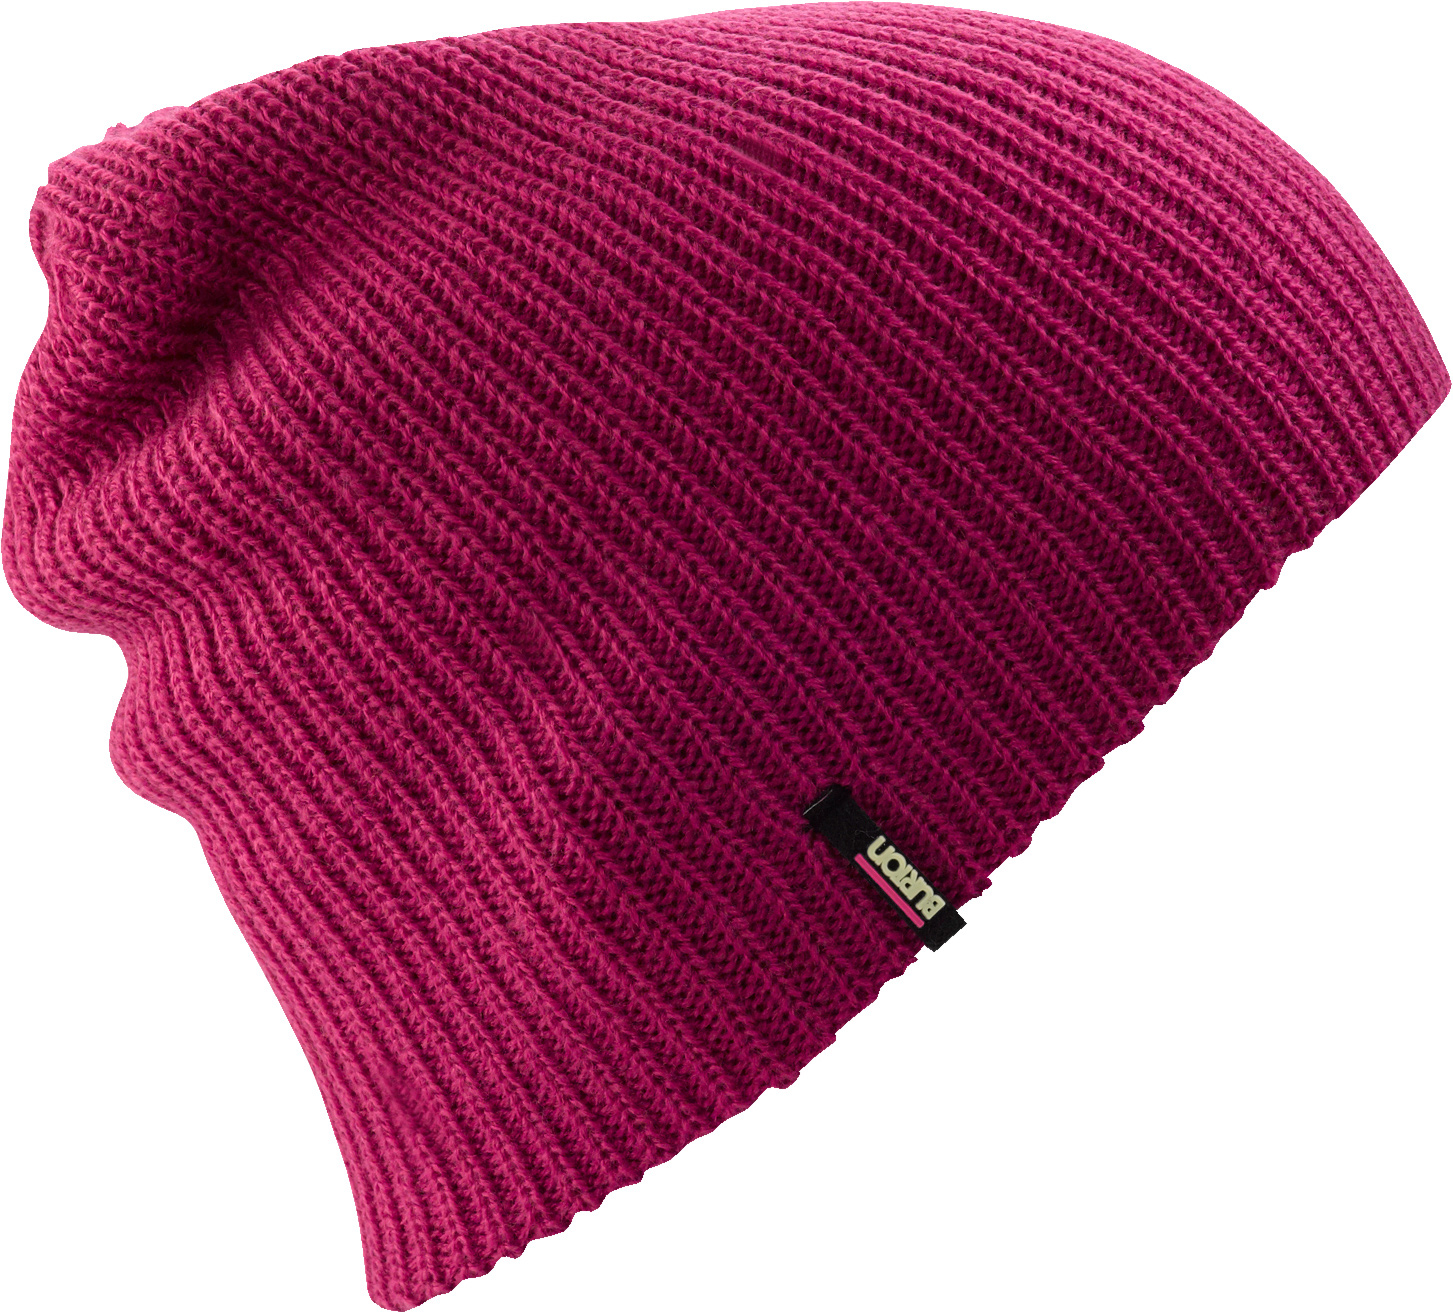 Snowboard Key Features of the Burton All Day Long Beanie: 100% Fine Knit Acrylic Slouch Fit - $9.95